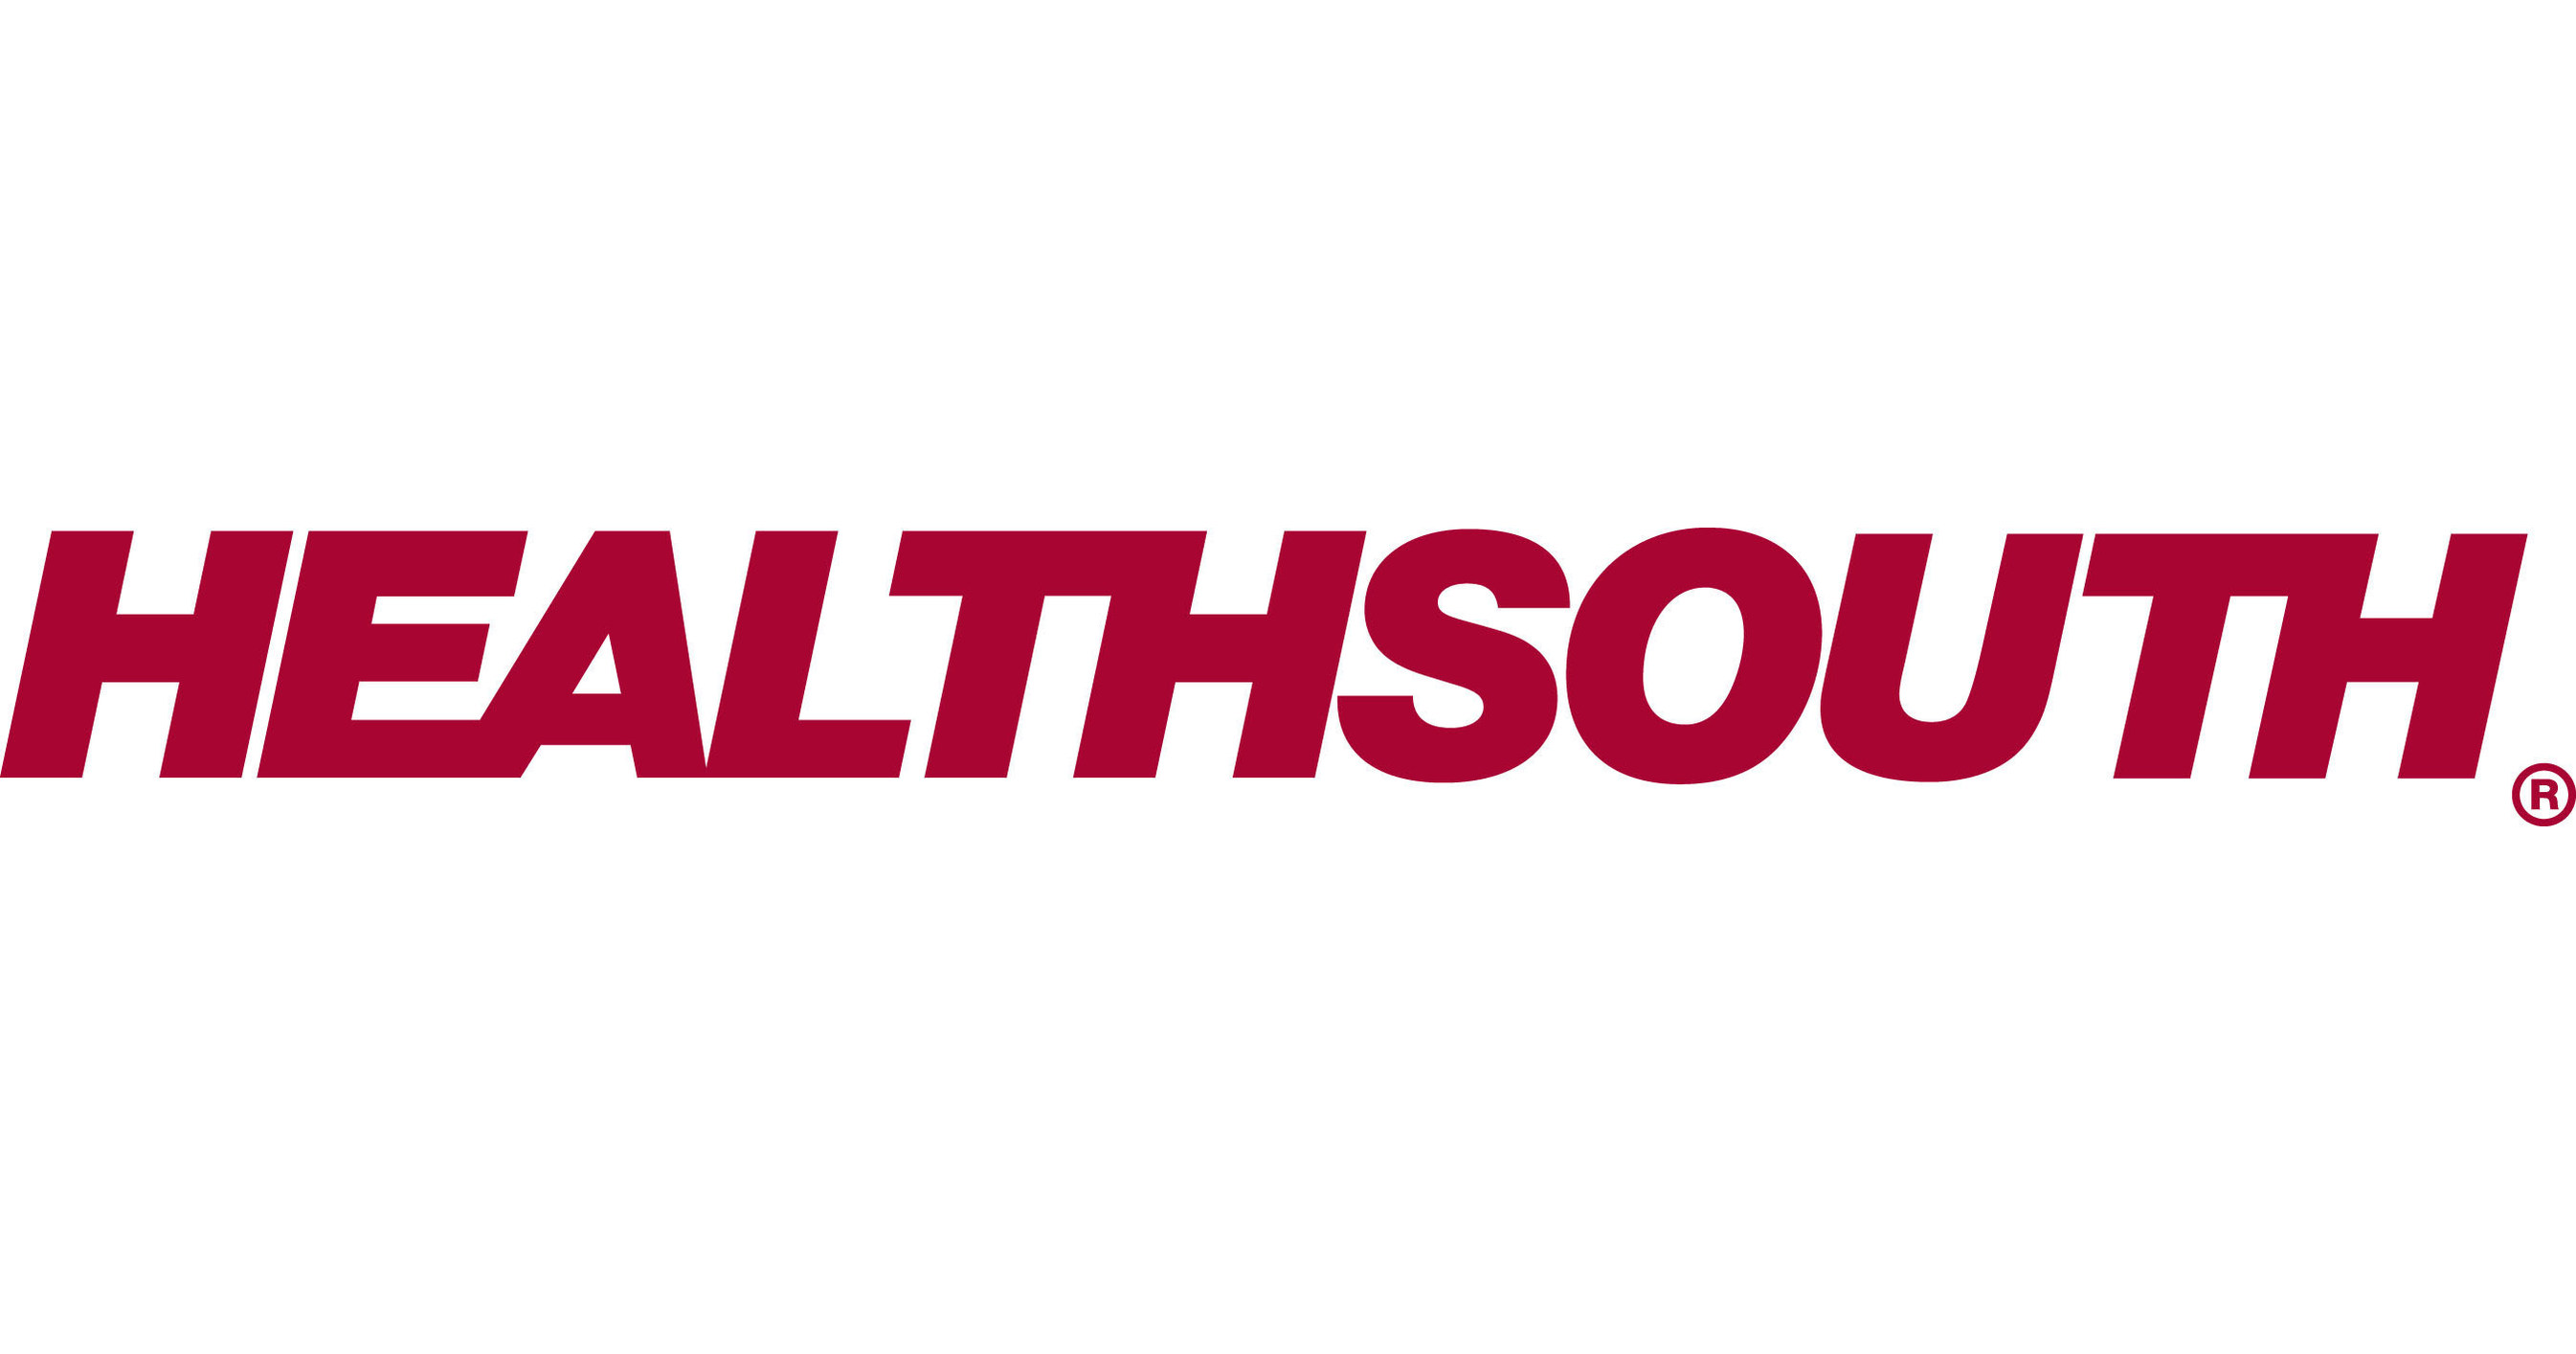 Healthsouth physical therapy - Healthsouth Corporation And University Medical Center Health System Announce Joint Venture